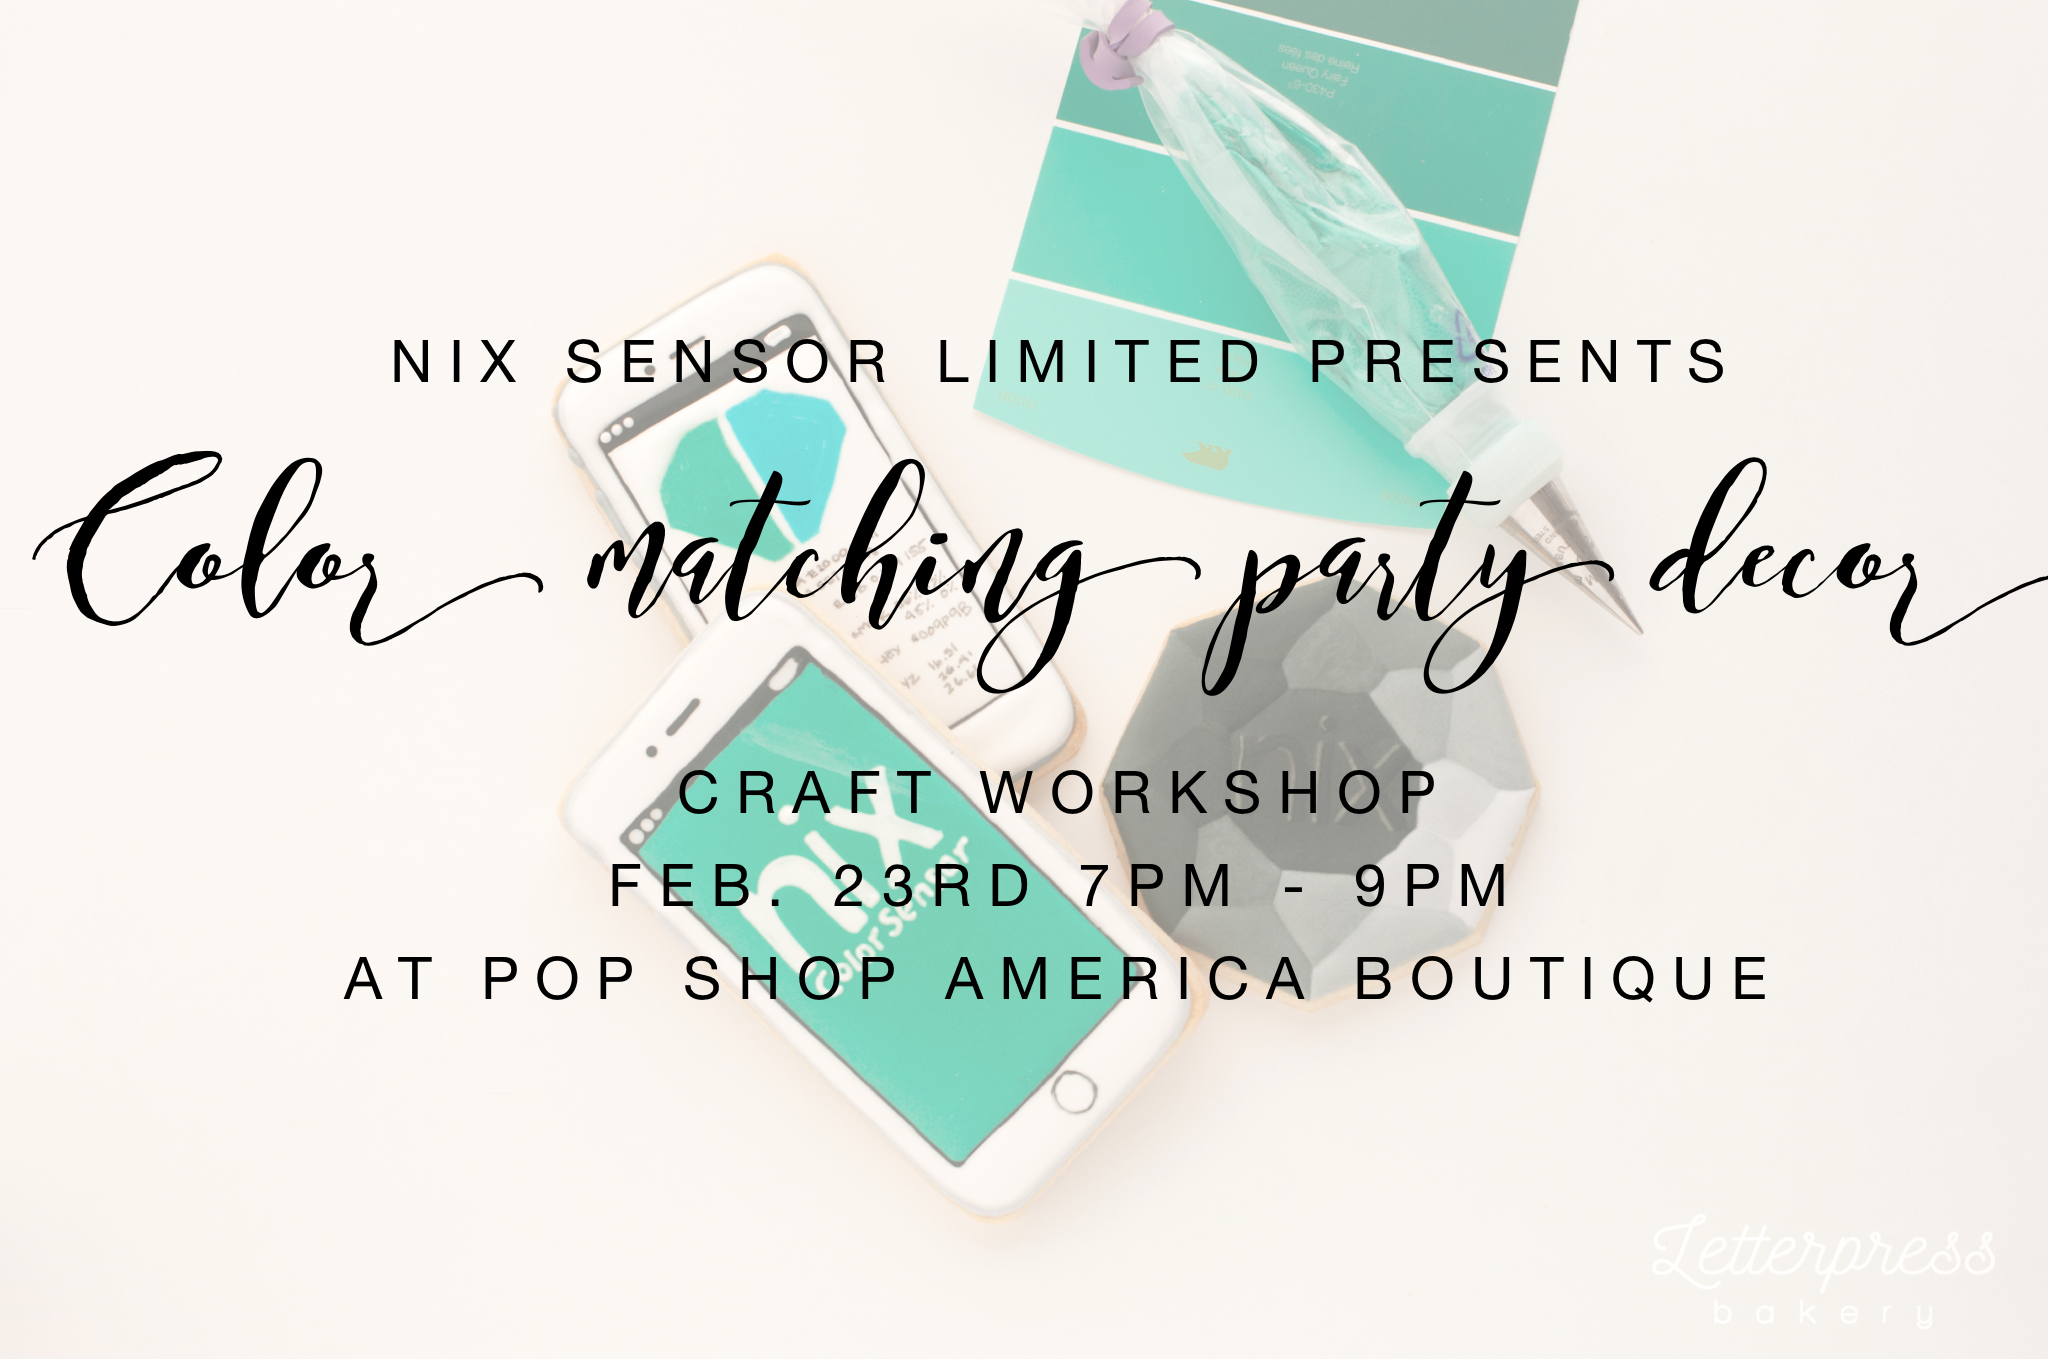 nix color matching craft workshop houston pop shop america